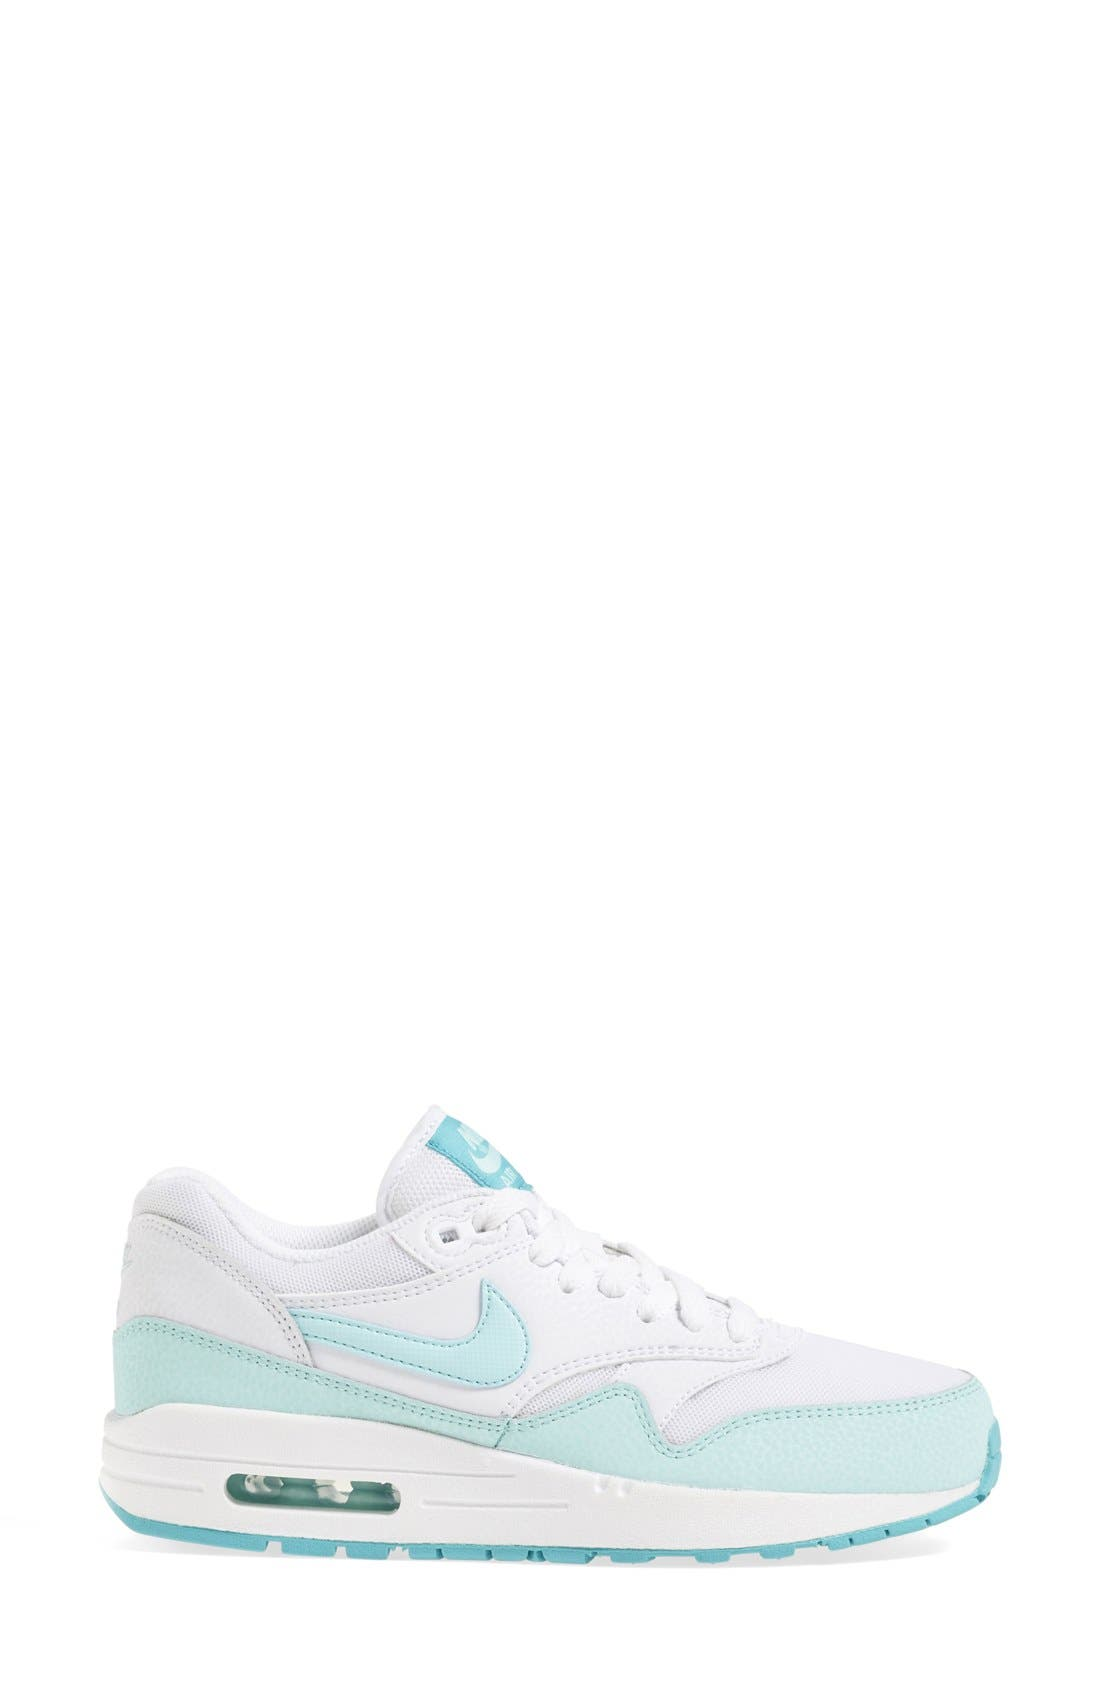 nike air max 1 essential blue and white bedding